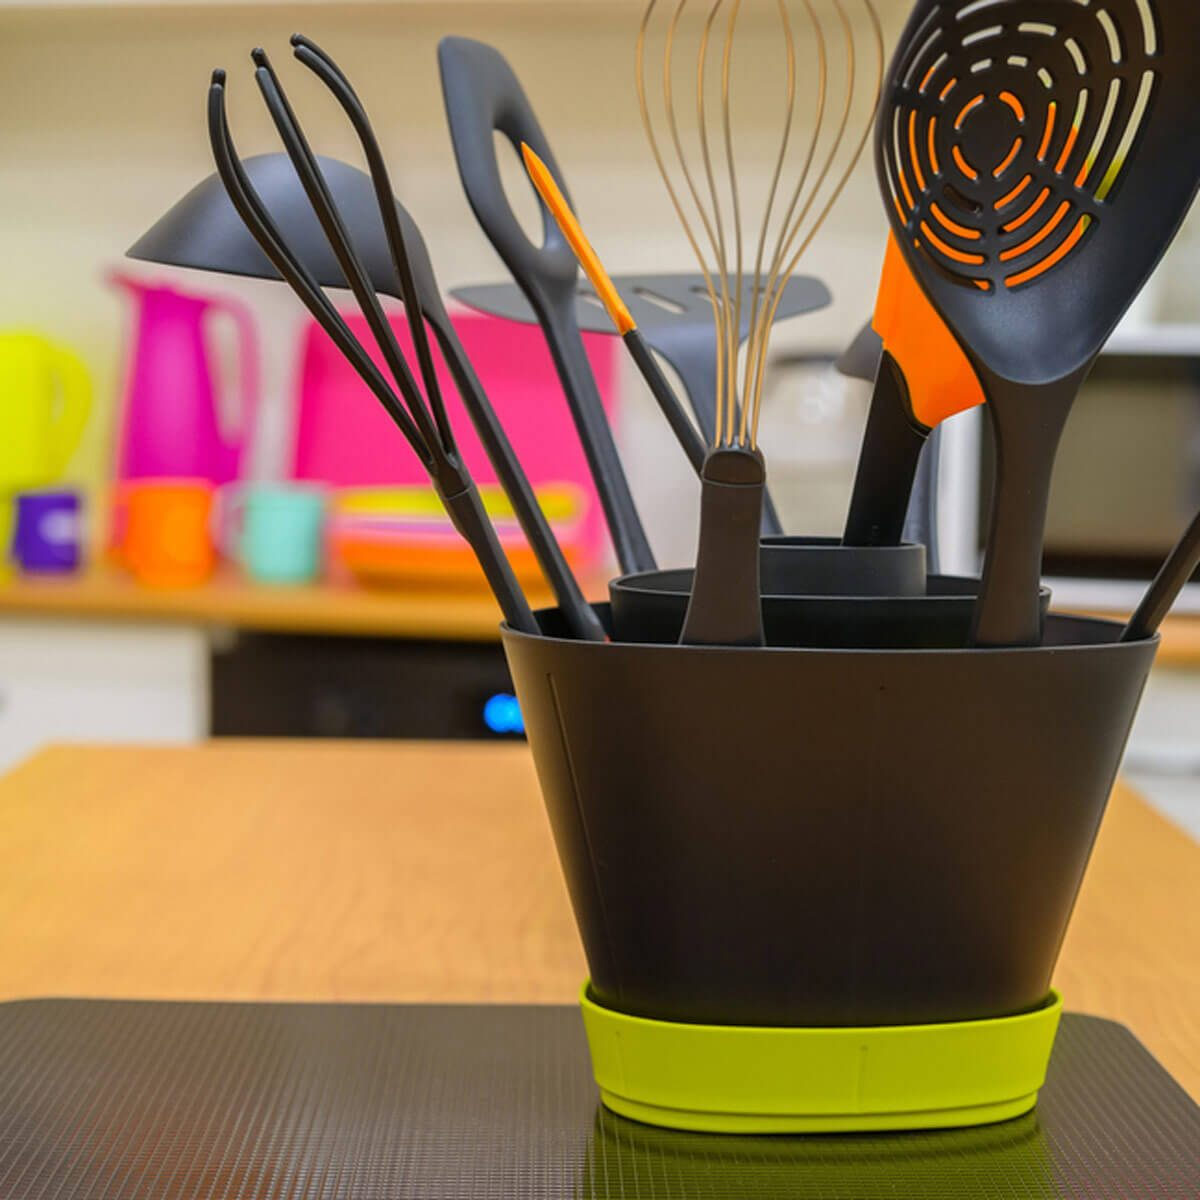 Plastic kitchen cooking utensils